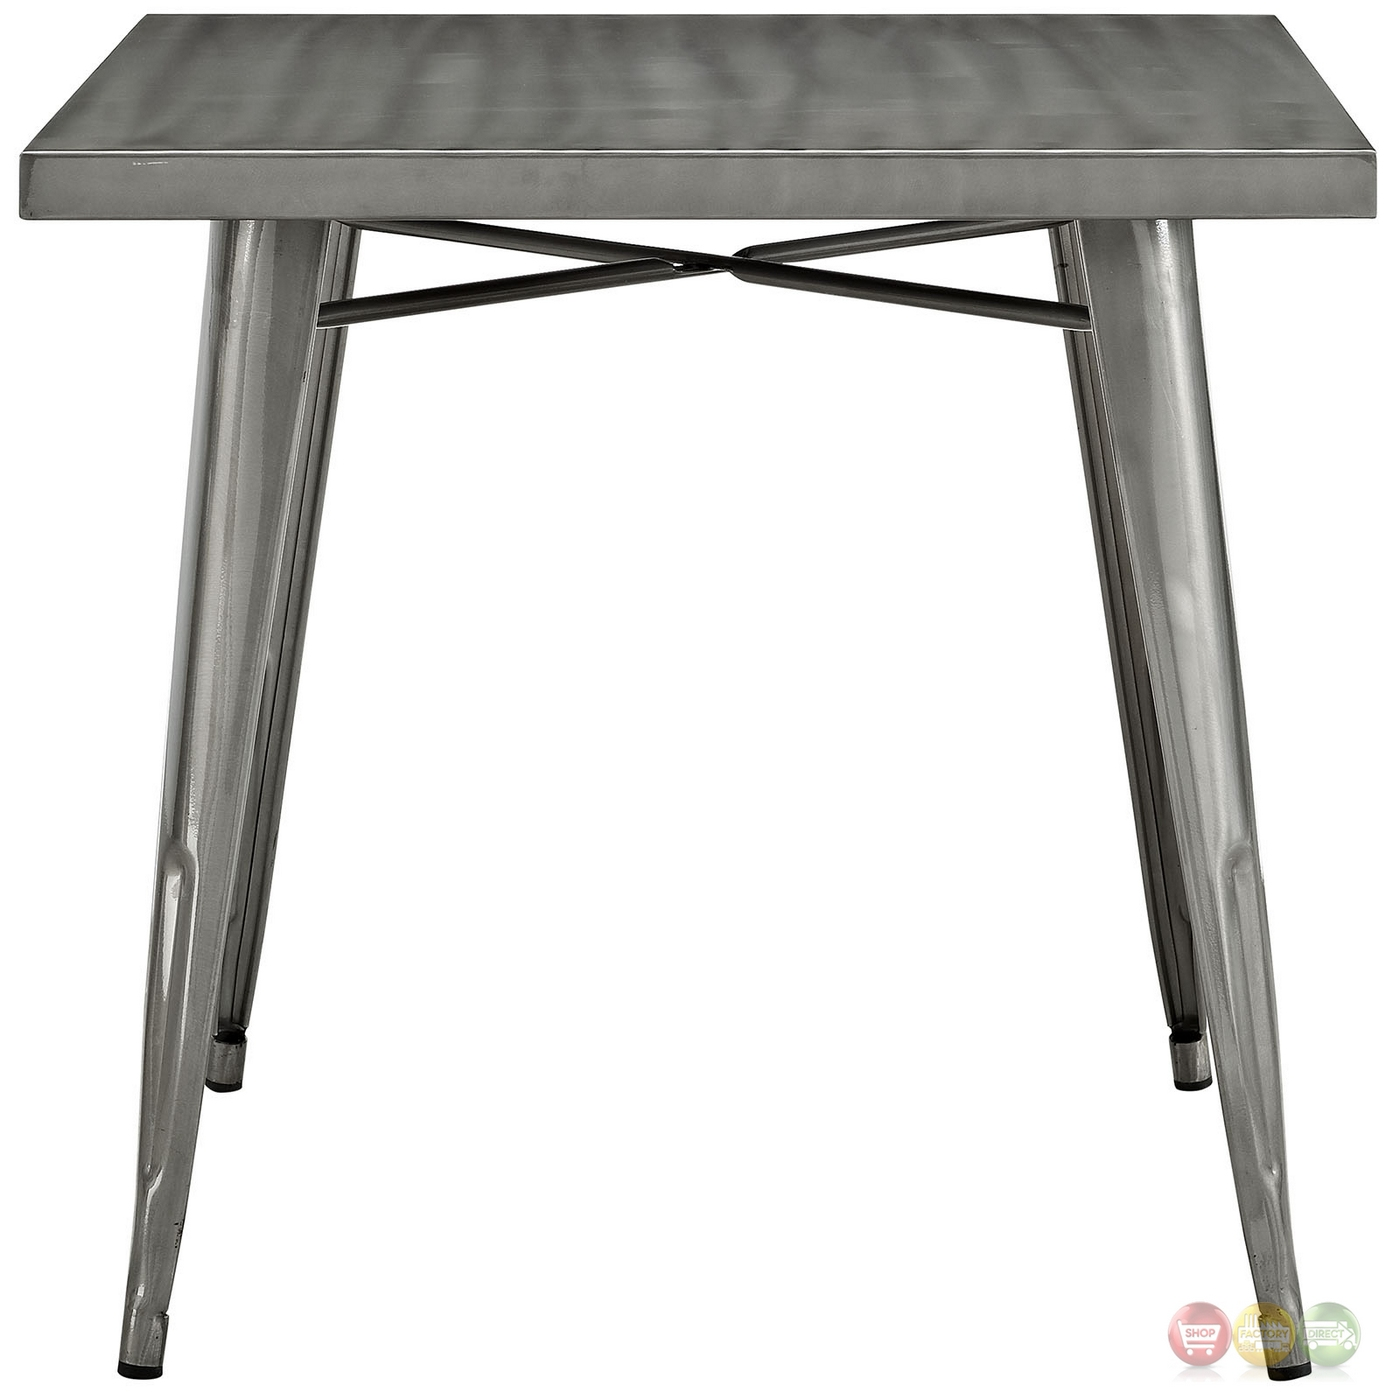 Alacrity Modern Industrial 32 Steel Square Dining Table Gunmetal